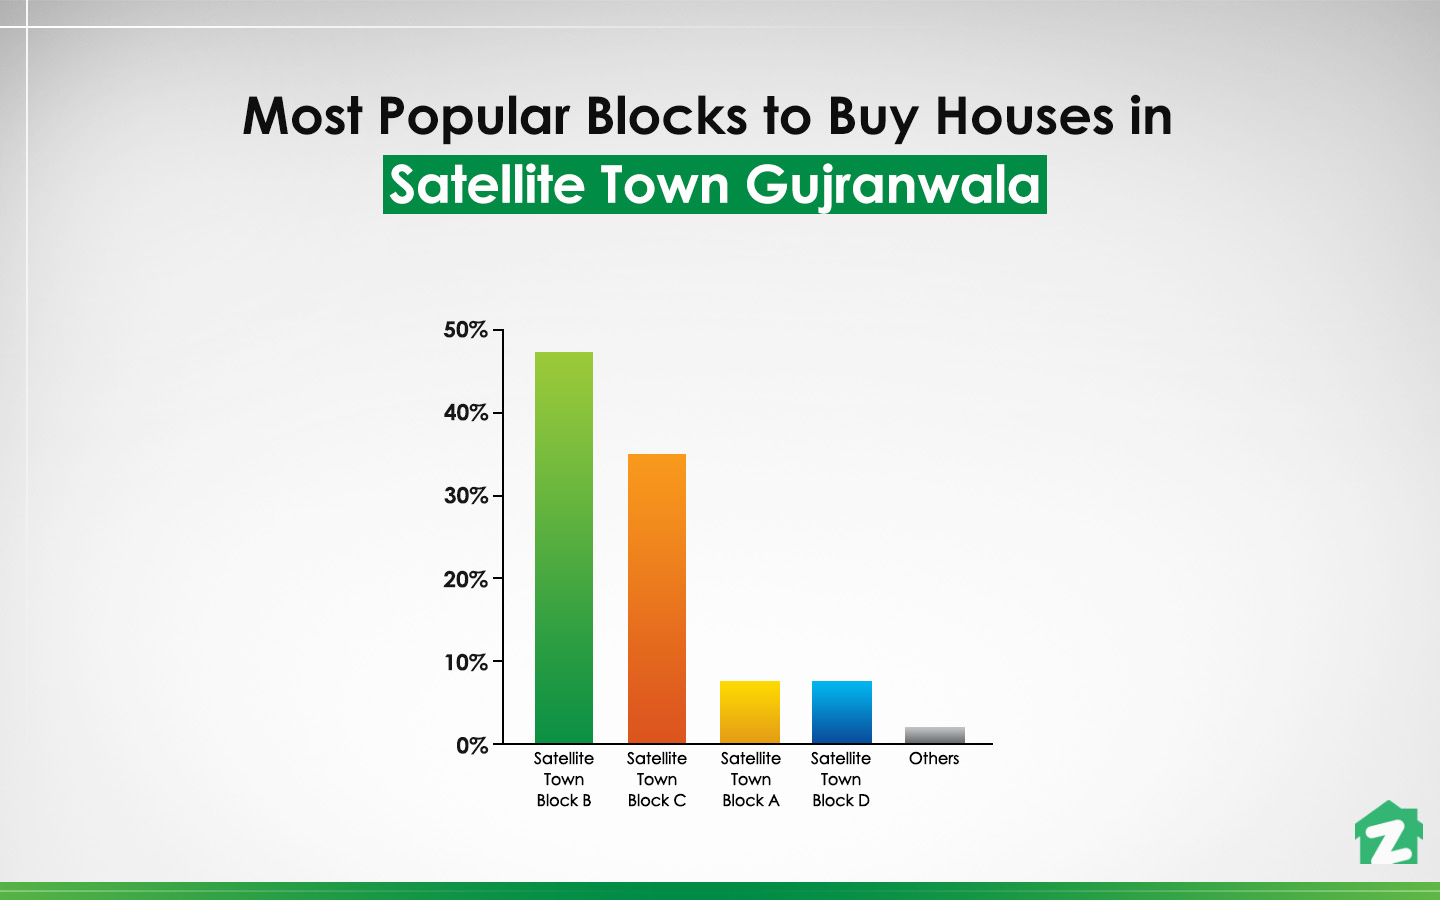 Satellite Town-Block B is a top choice for buying houses